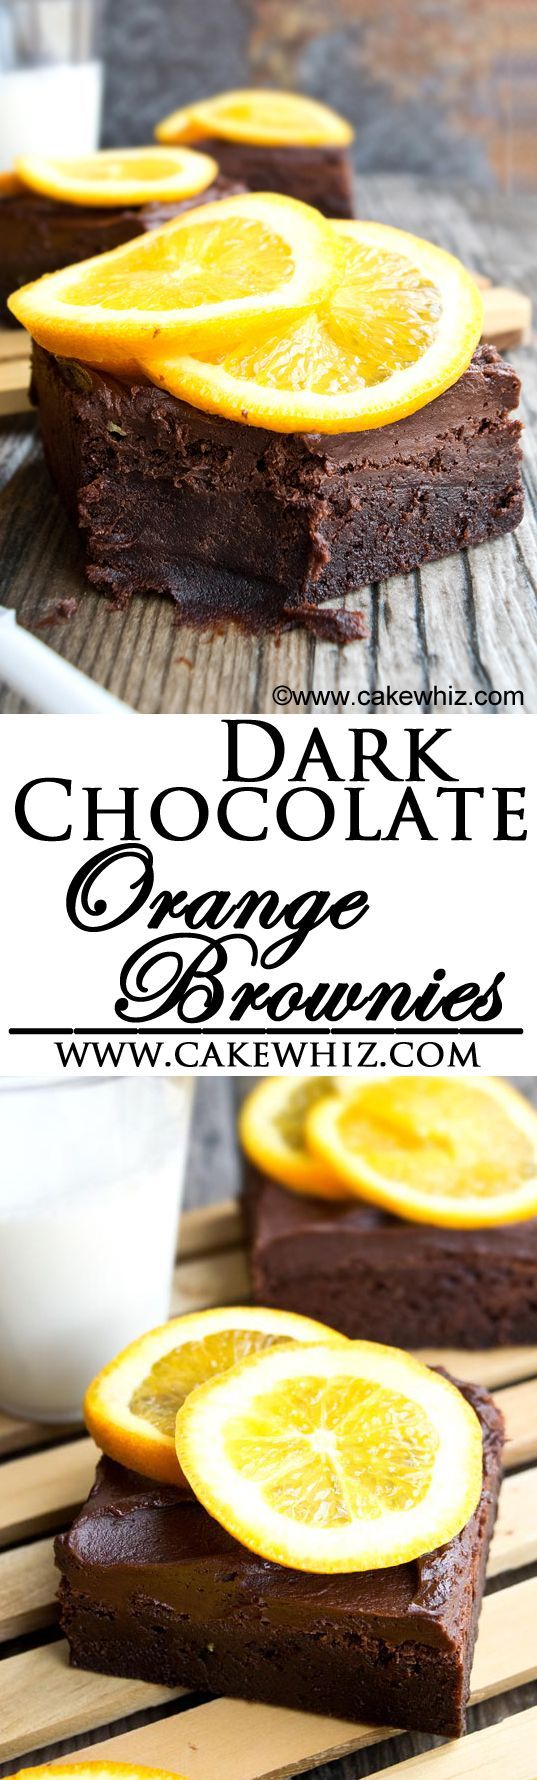 These rich and fudgy DARK CHOCOLATE ORANGE BROWNIES are topped off with chocolate fudge frosting. They are made with both, chocolate chips and cocoa powder plus lots of orange zest! Perfect citrus dessert for Spring and Summer time!